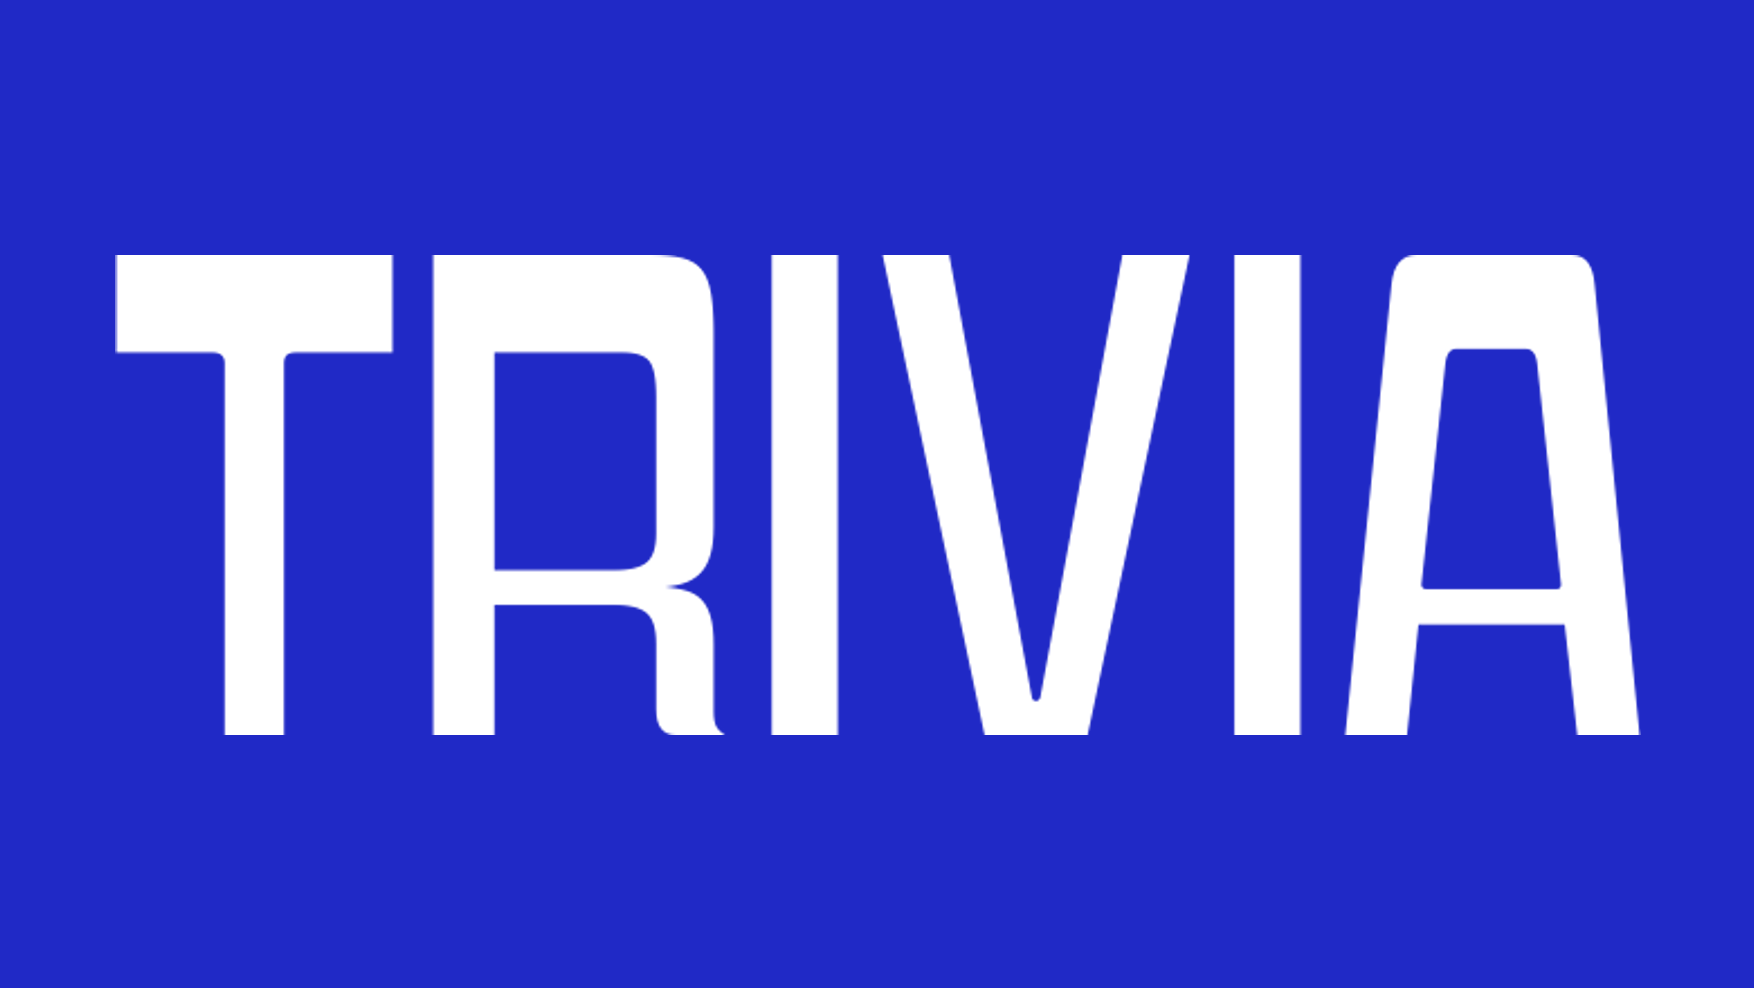 Trivia title card styled in the Jeopardy font